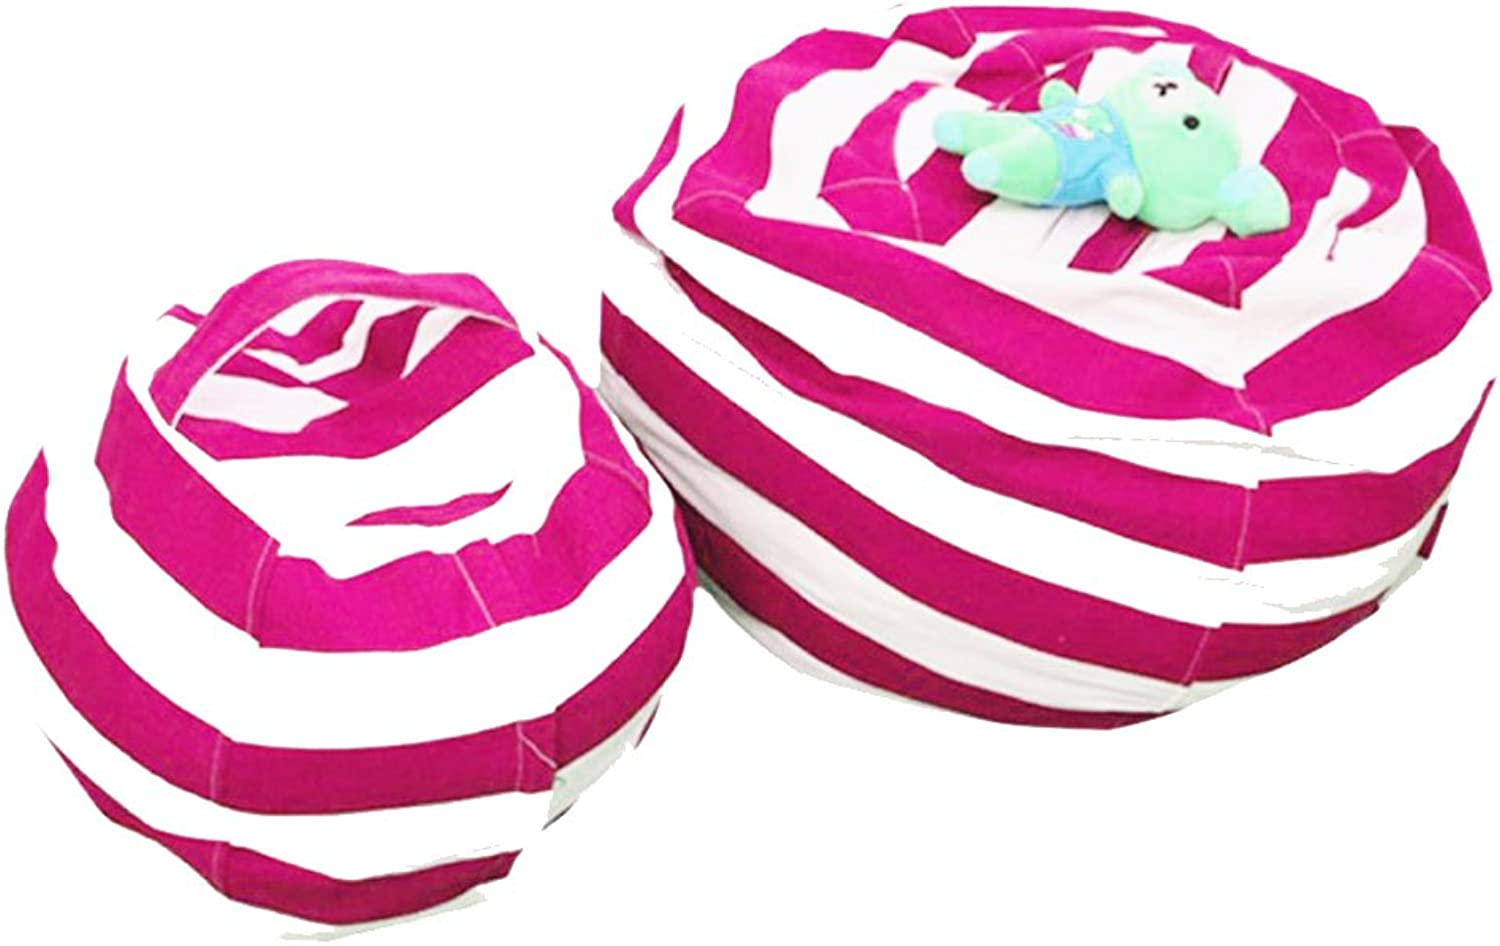 ZZURCCA Bean Bag Storage Chair Oversized Stuffed Animal Bean Bag Sofa for Kids Ultra Soft and Lightweight Comfy Seats with Handle,pinkred-White Stripe,2PC